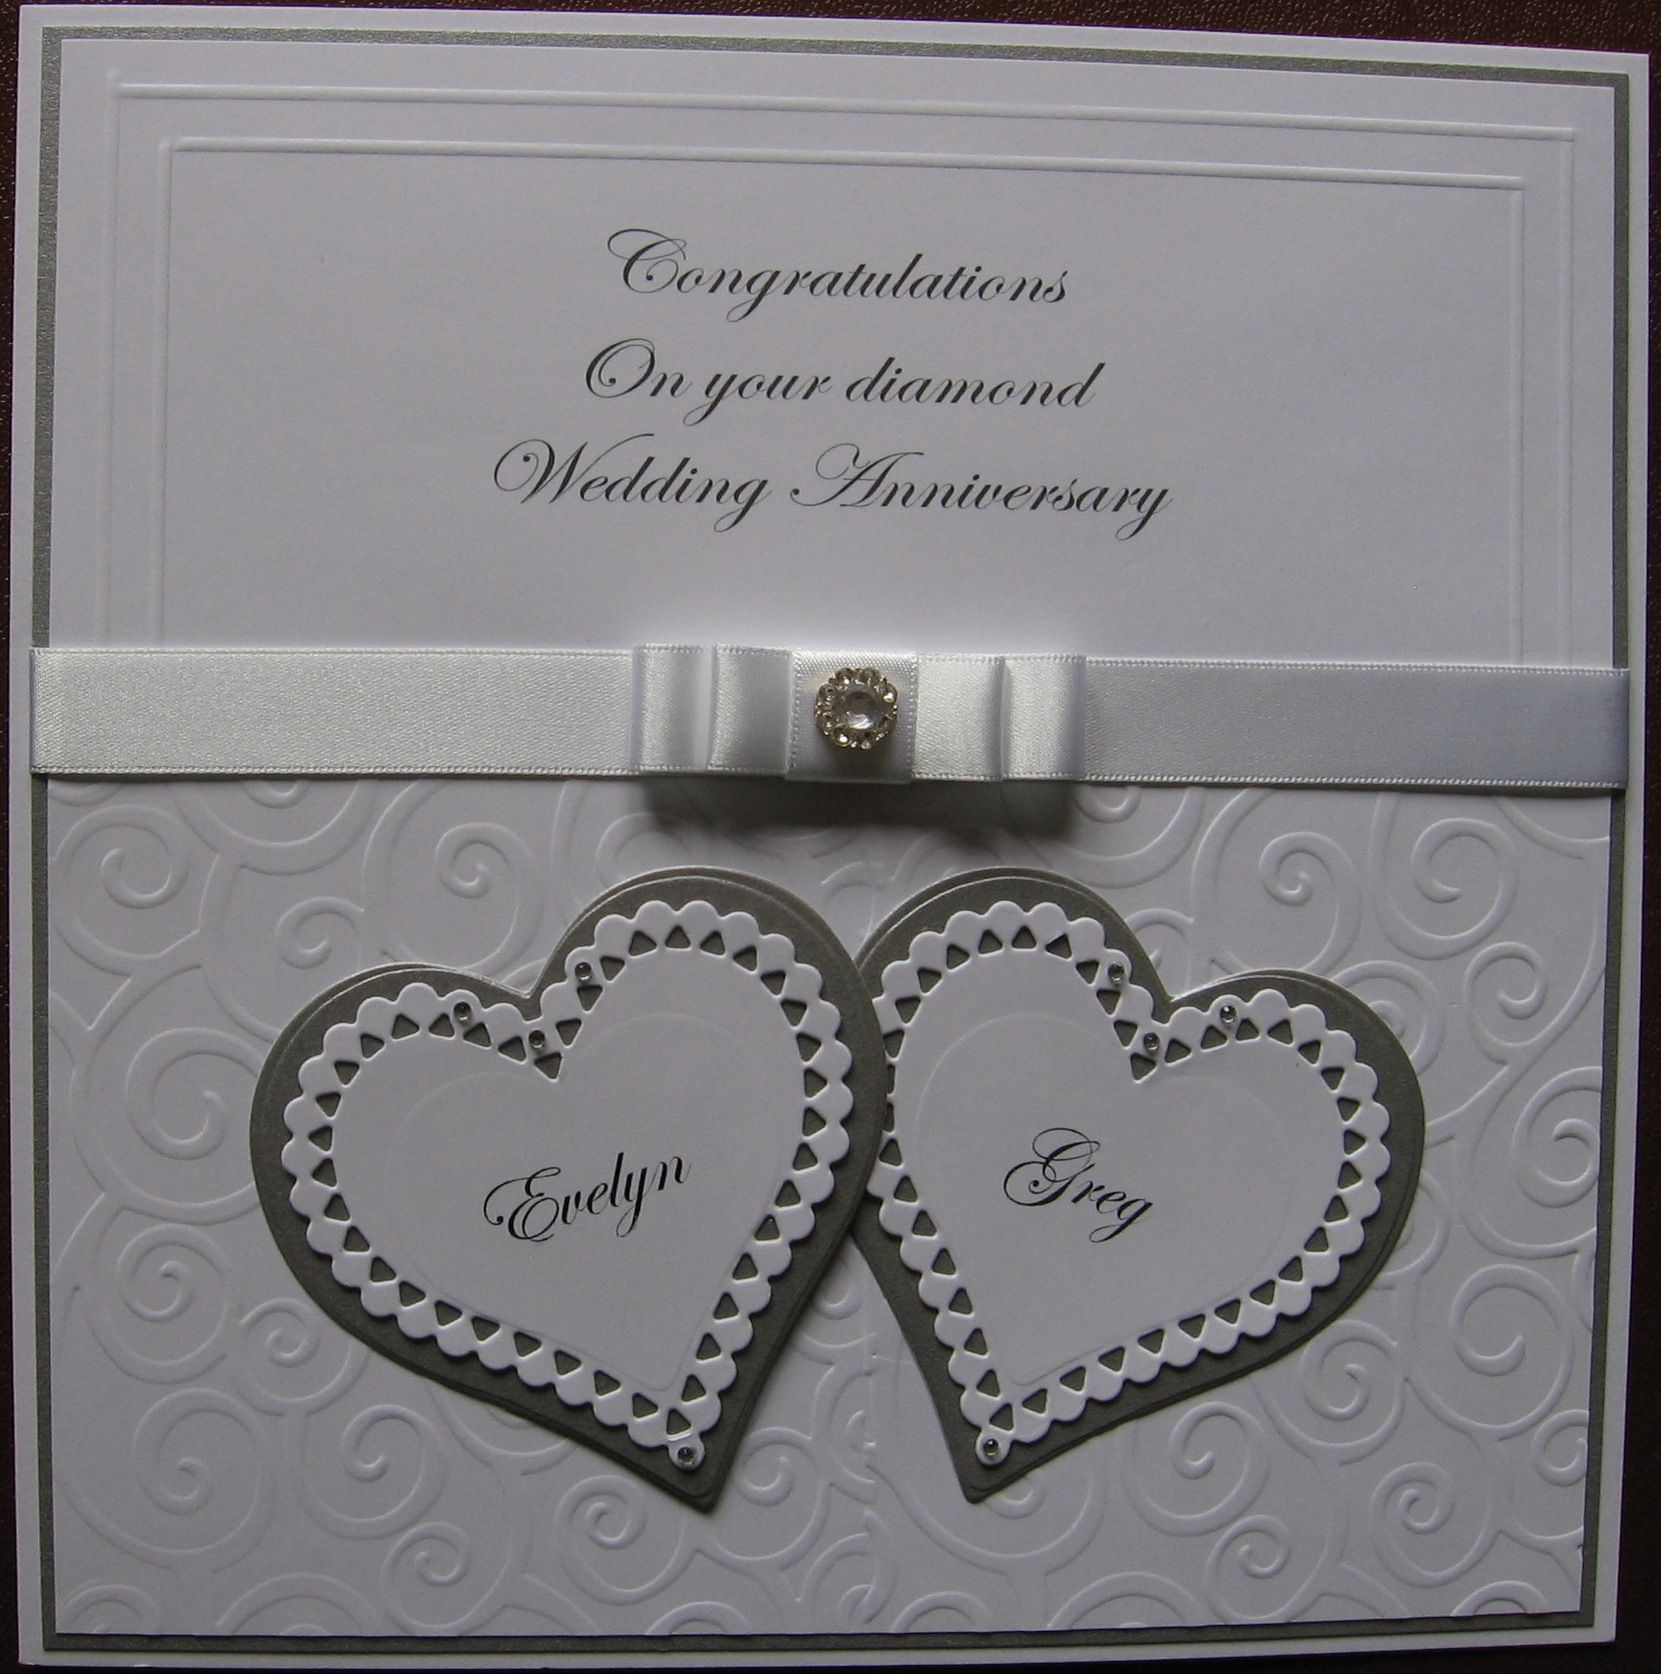 60th Wedding Anniversary Gifts For Friends: Card Made For A Friend On Her Diamond Wedding Anniversary